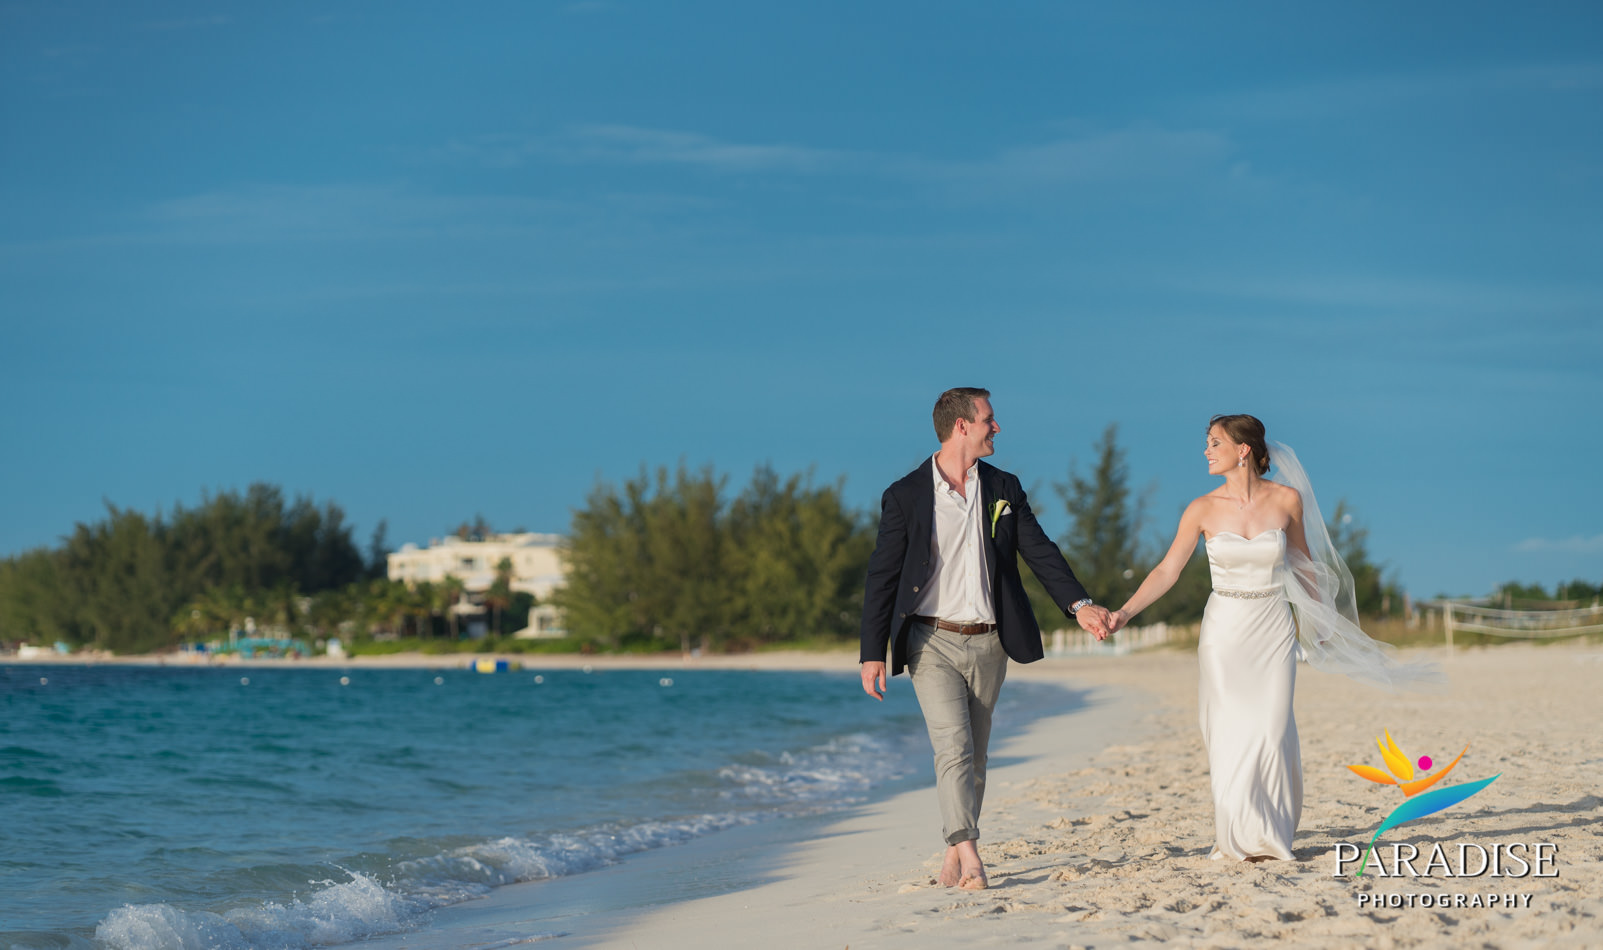 021-turks-and-caicos-destination-wedding-beach-caribbean-photography-photographer-pic-pictures-bride-groom-grace-bay-gansevoort-elopement